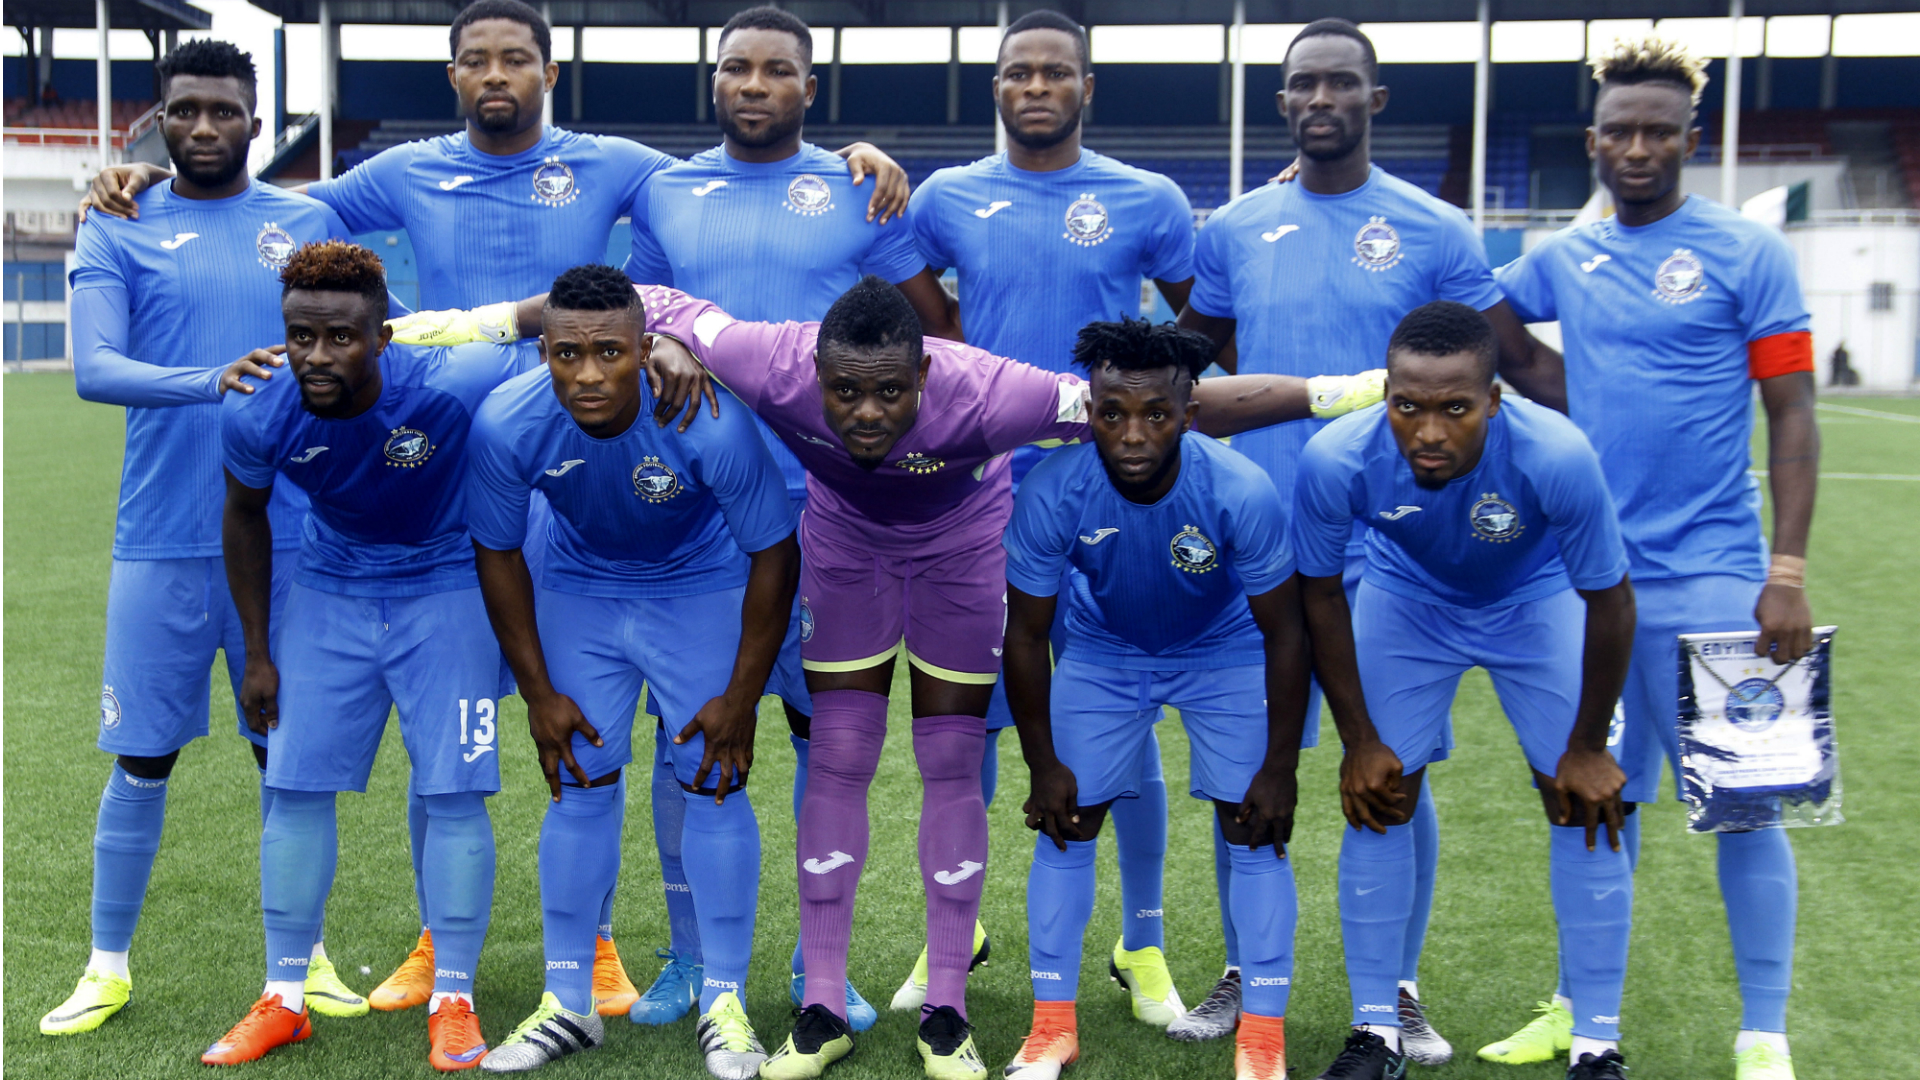 Enyimba, Rangers International in tough groups against North African opponents